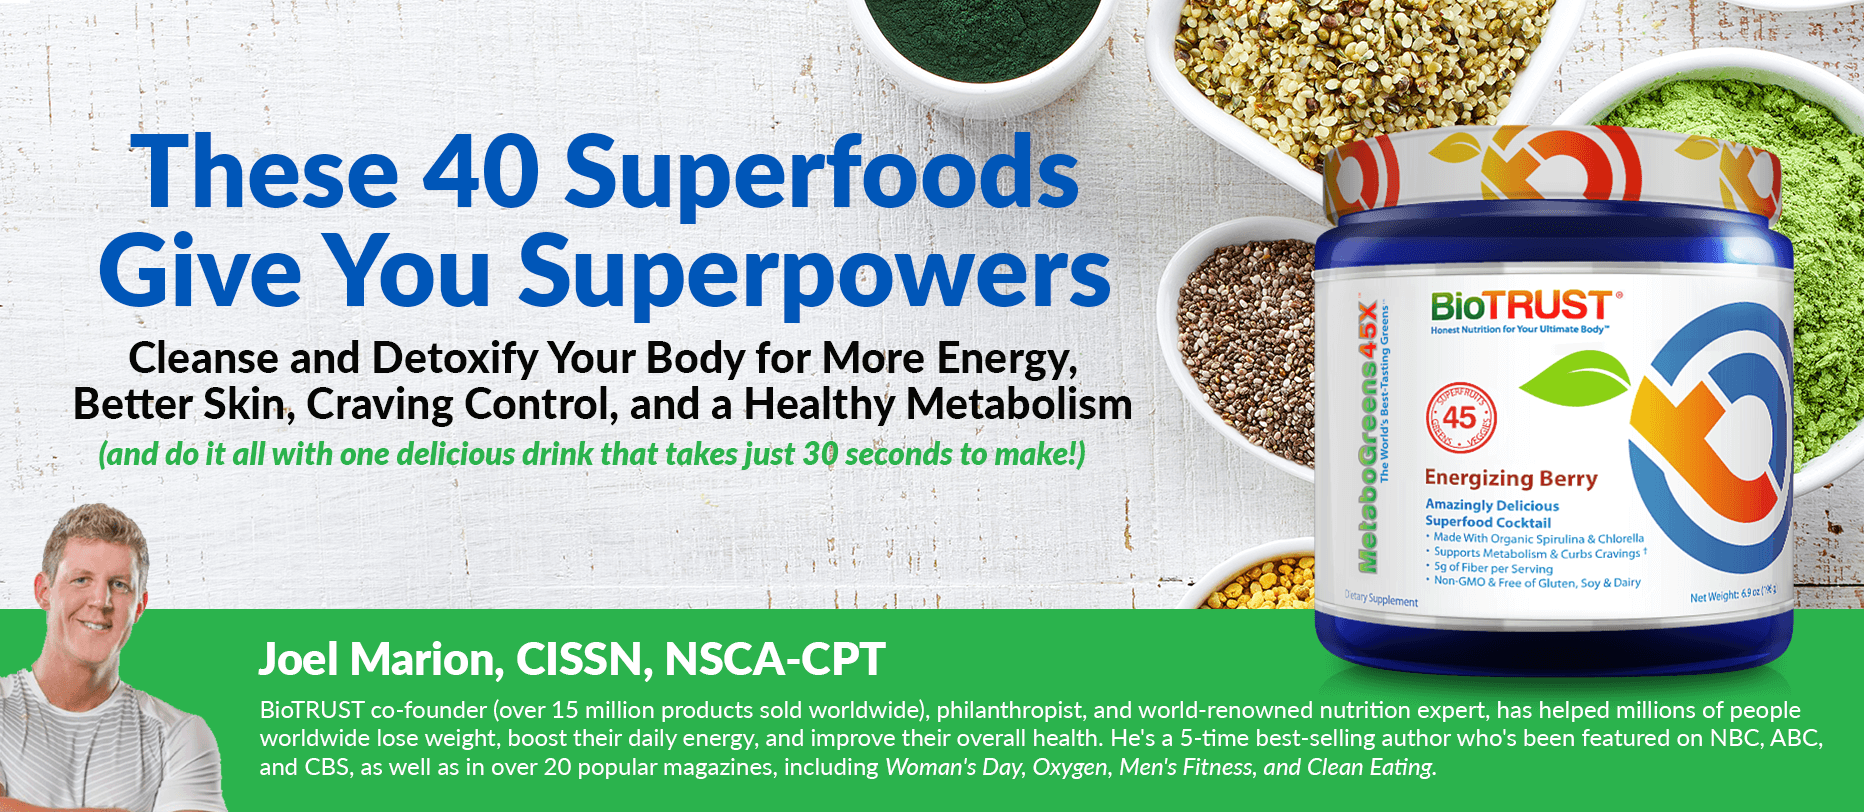 These 40 Superfoods Give You Superpowers